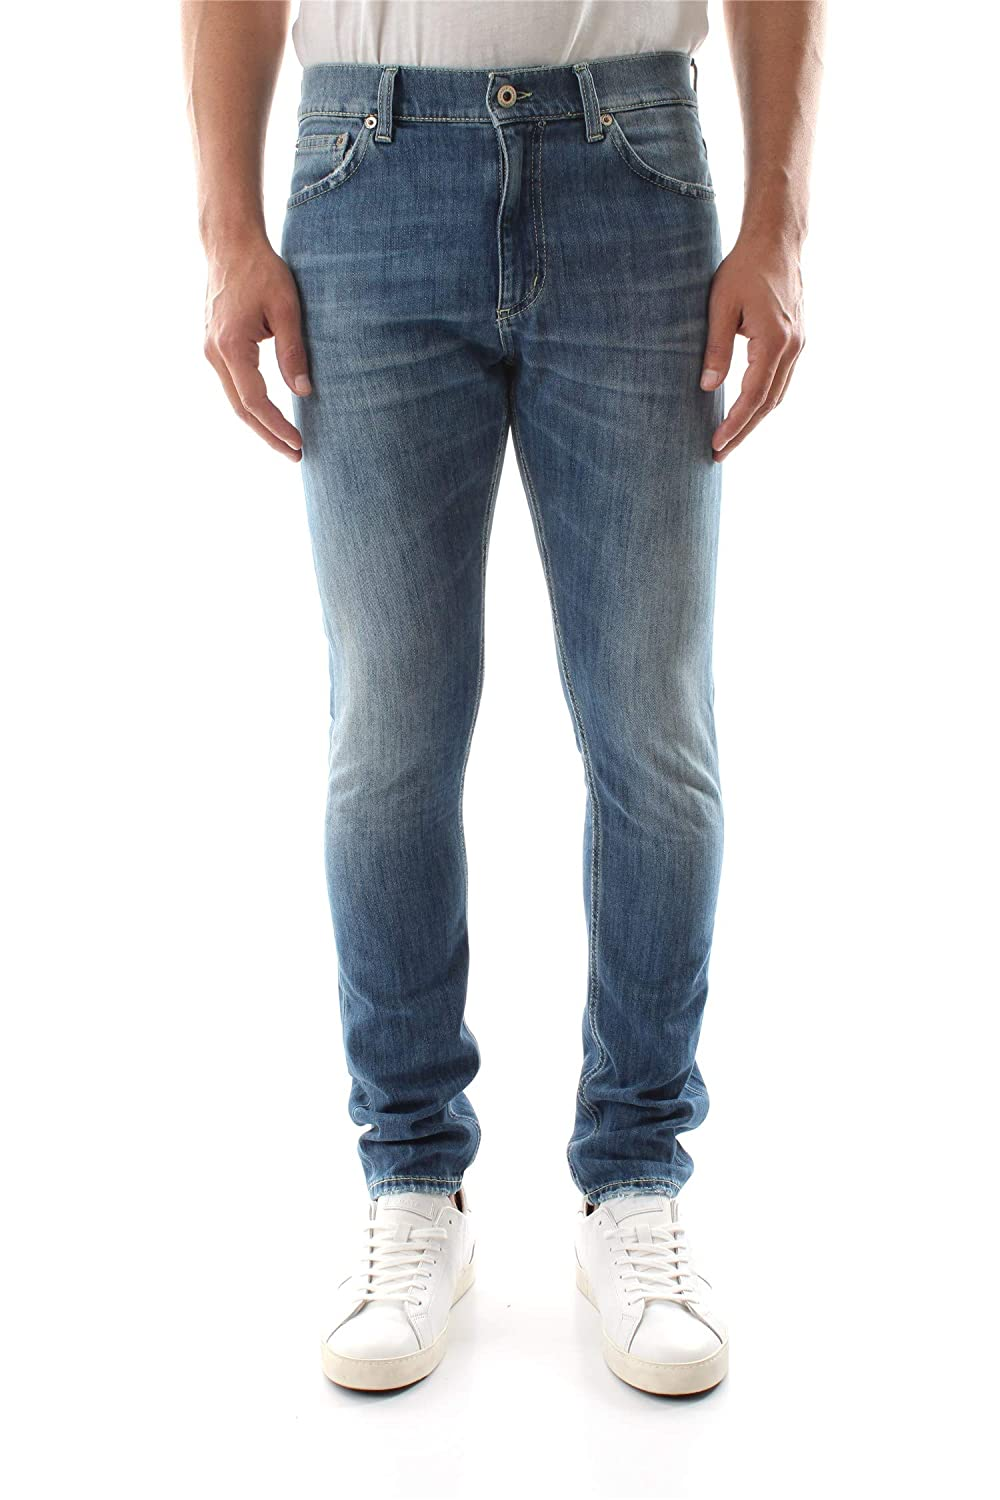 DONDUP Vicious UP489 Jeans Uomo